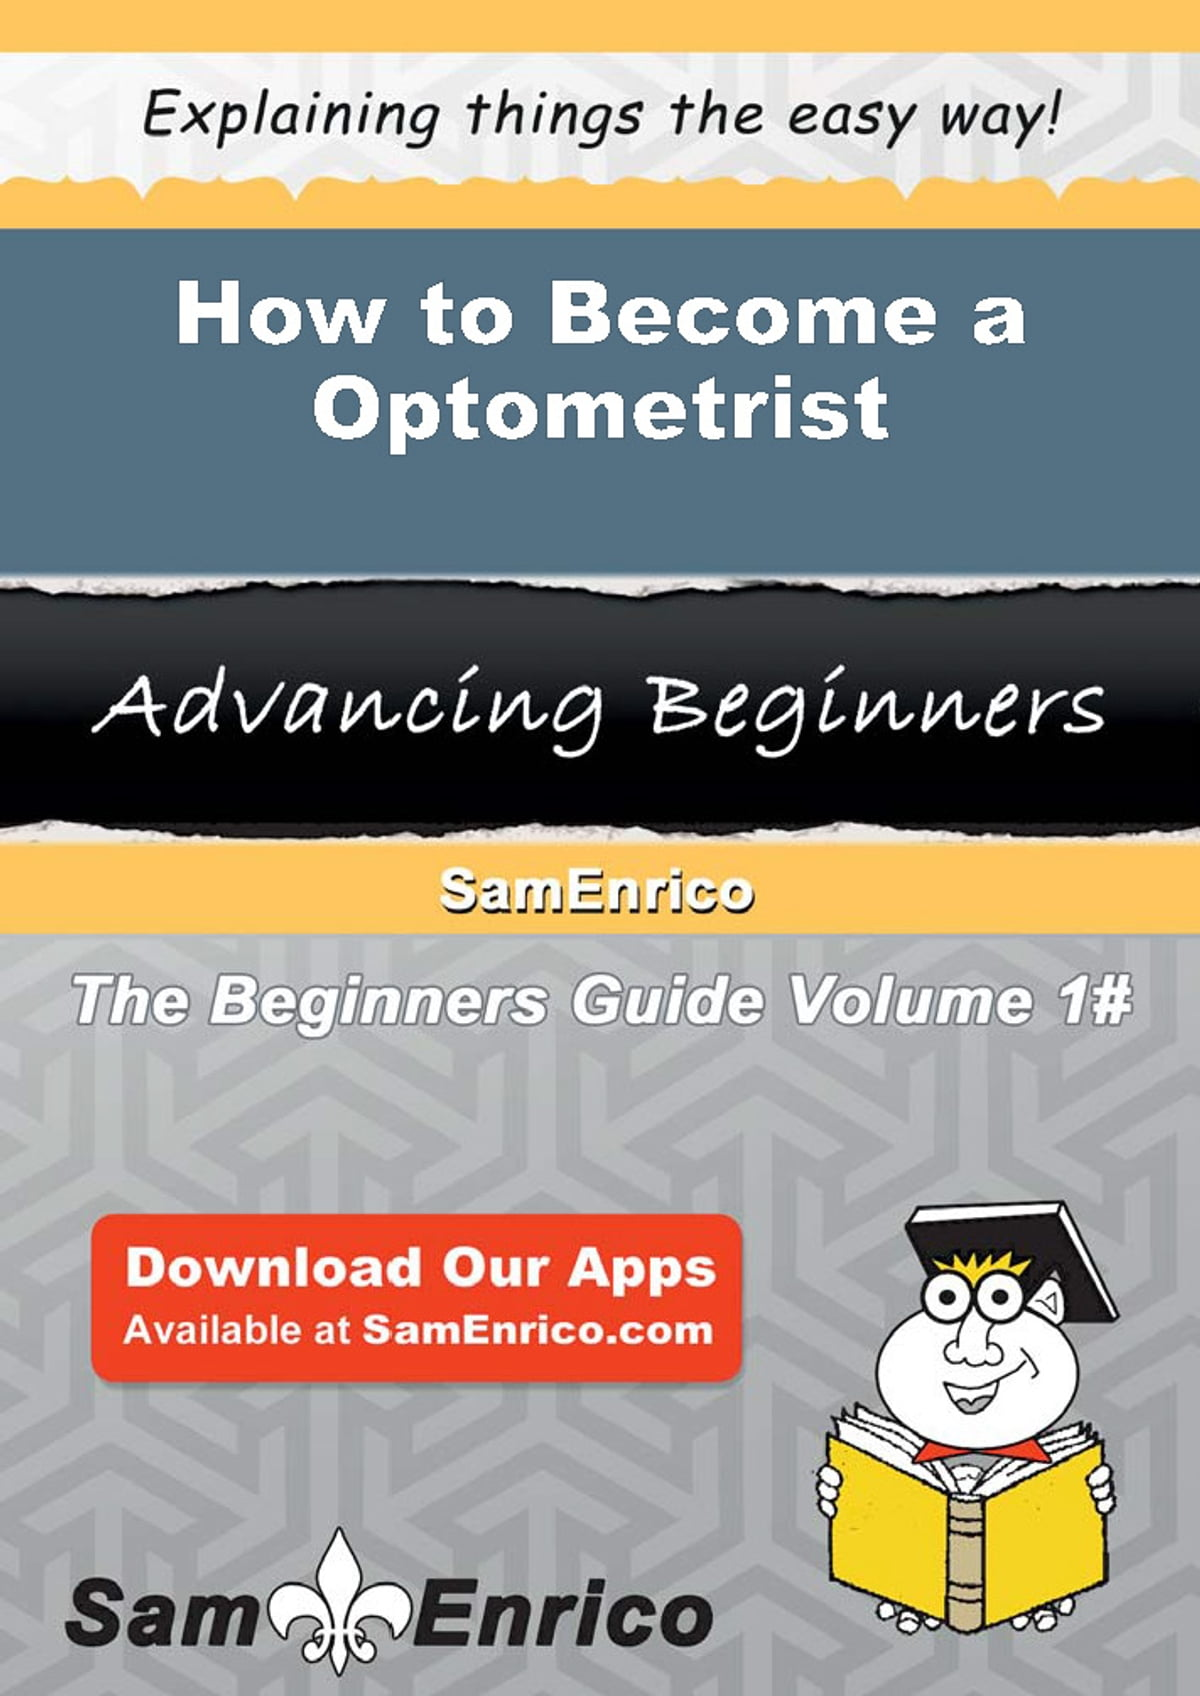 pictures How to Become an Optometrist